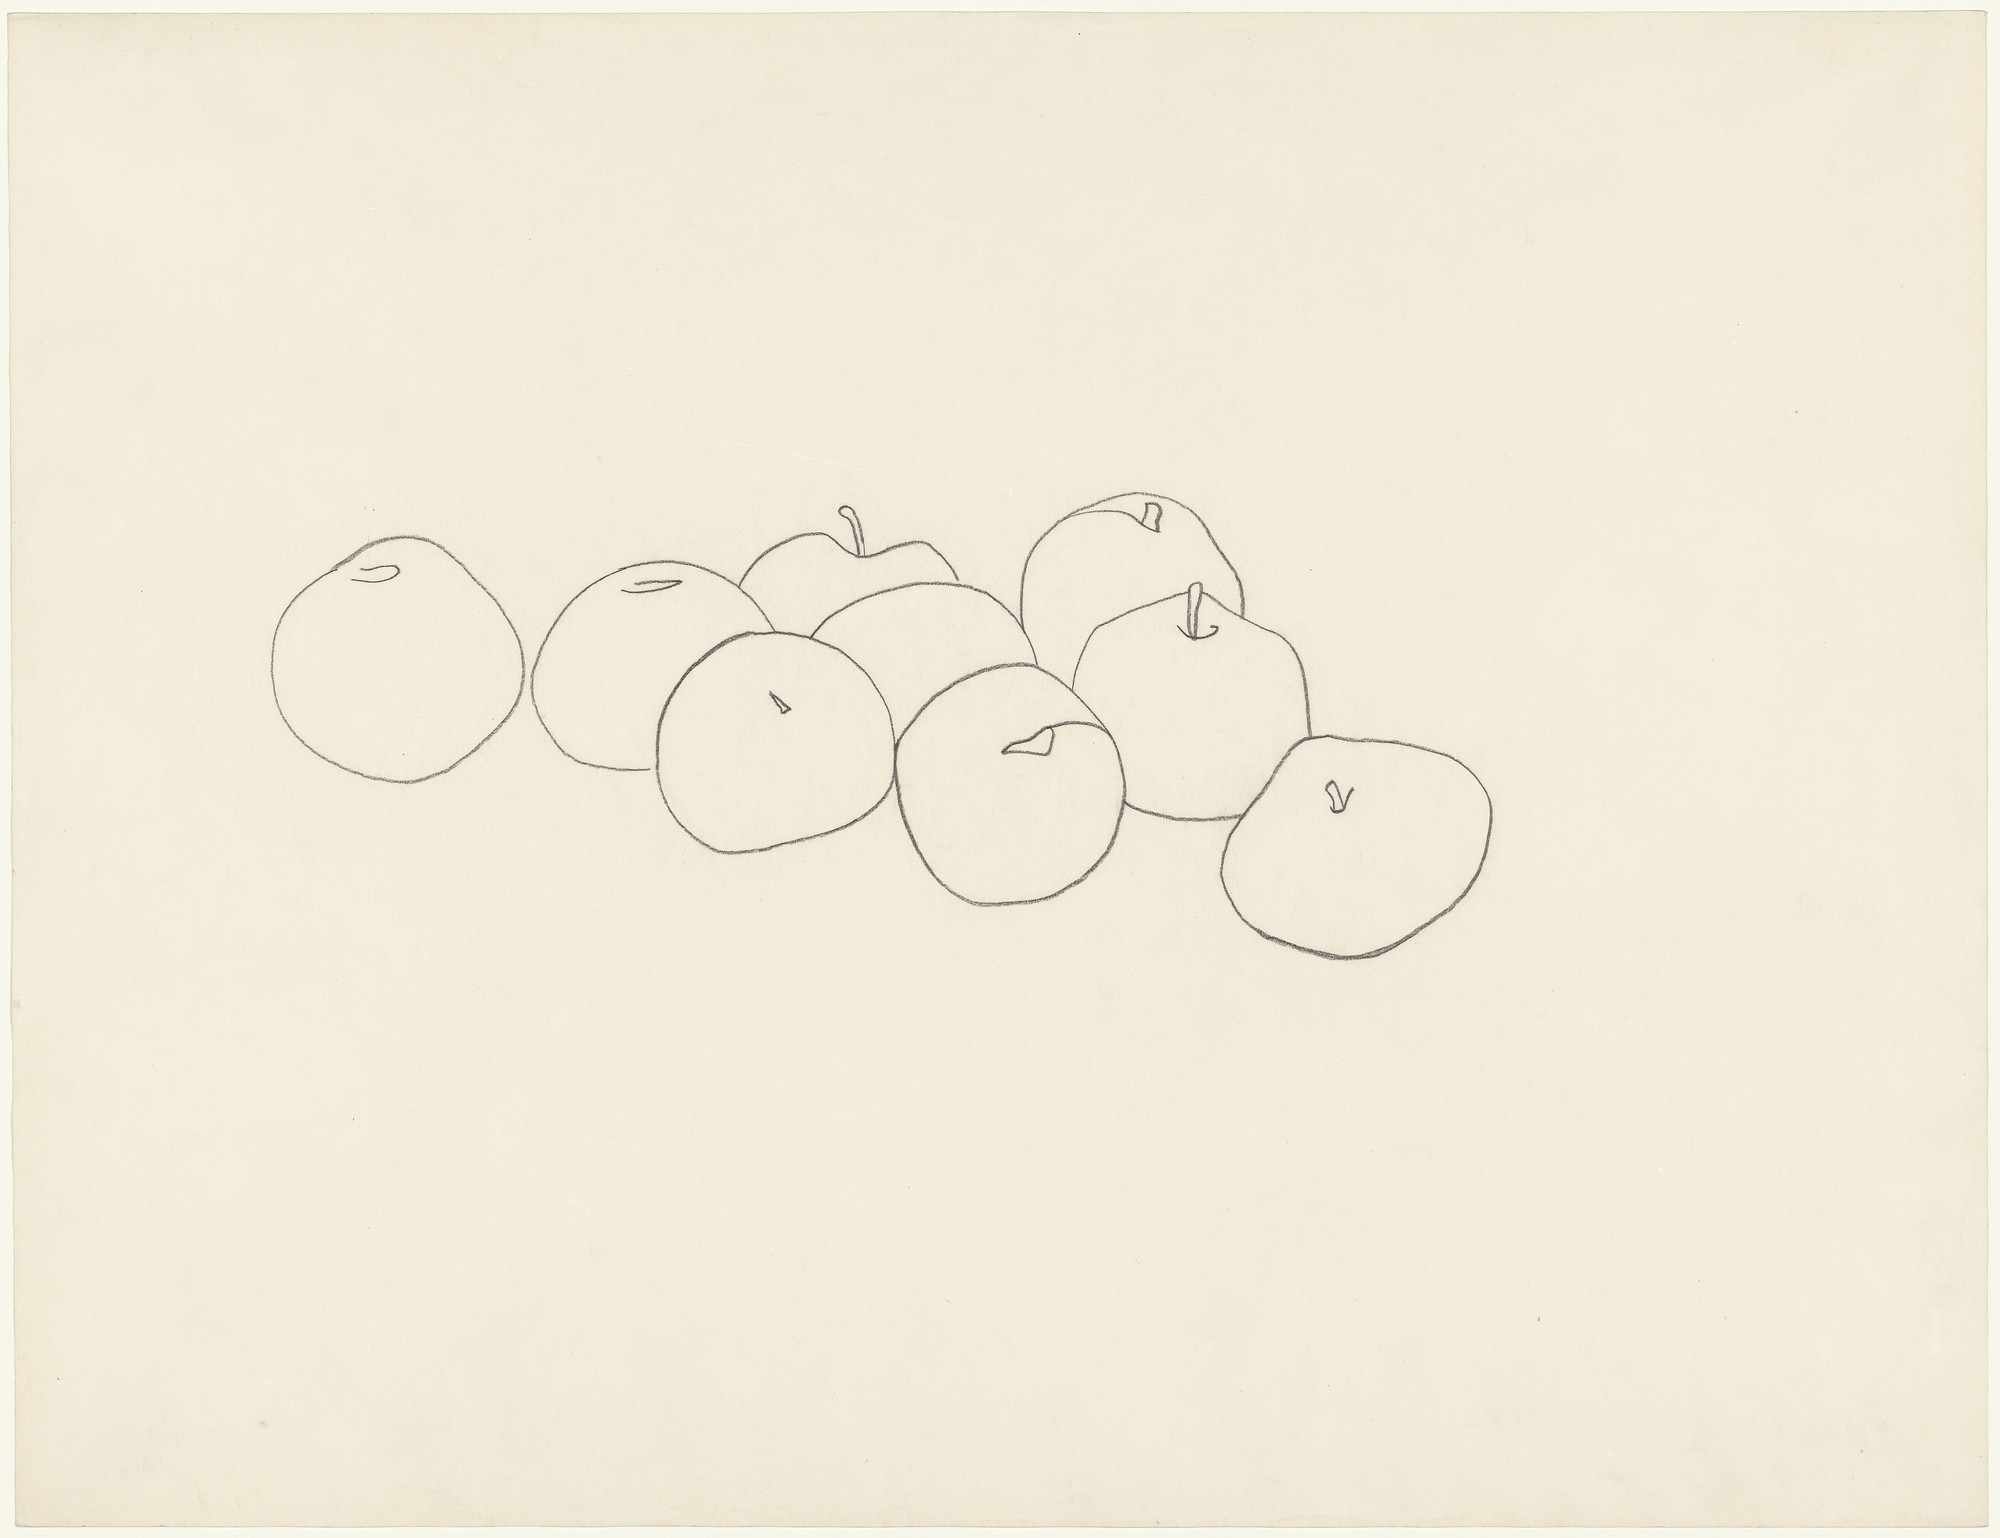 Ellsworth Kelly. Apples. Paris, 1949